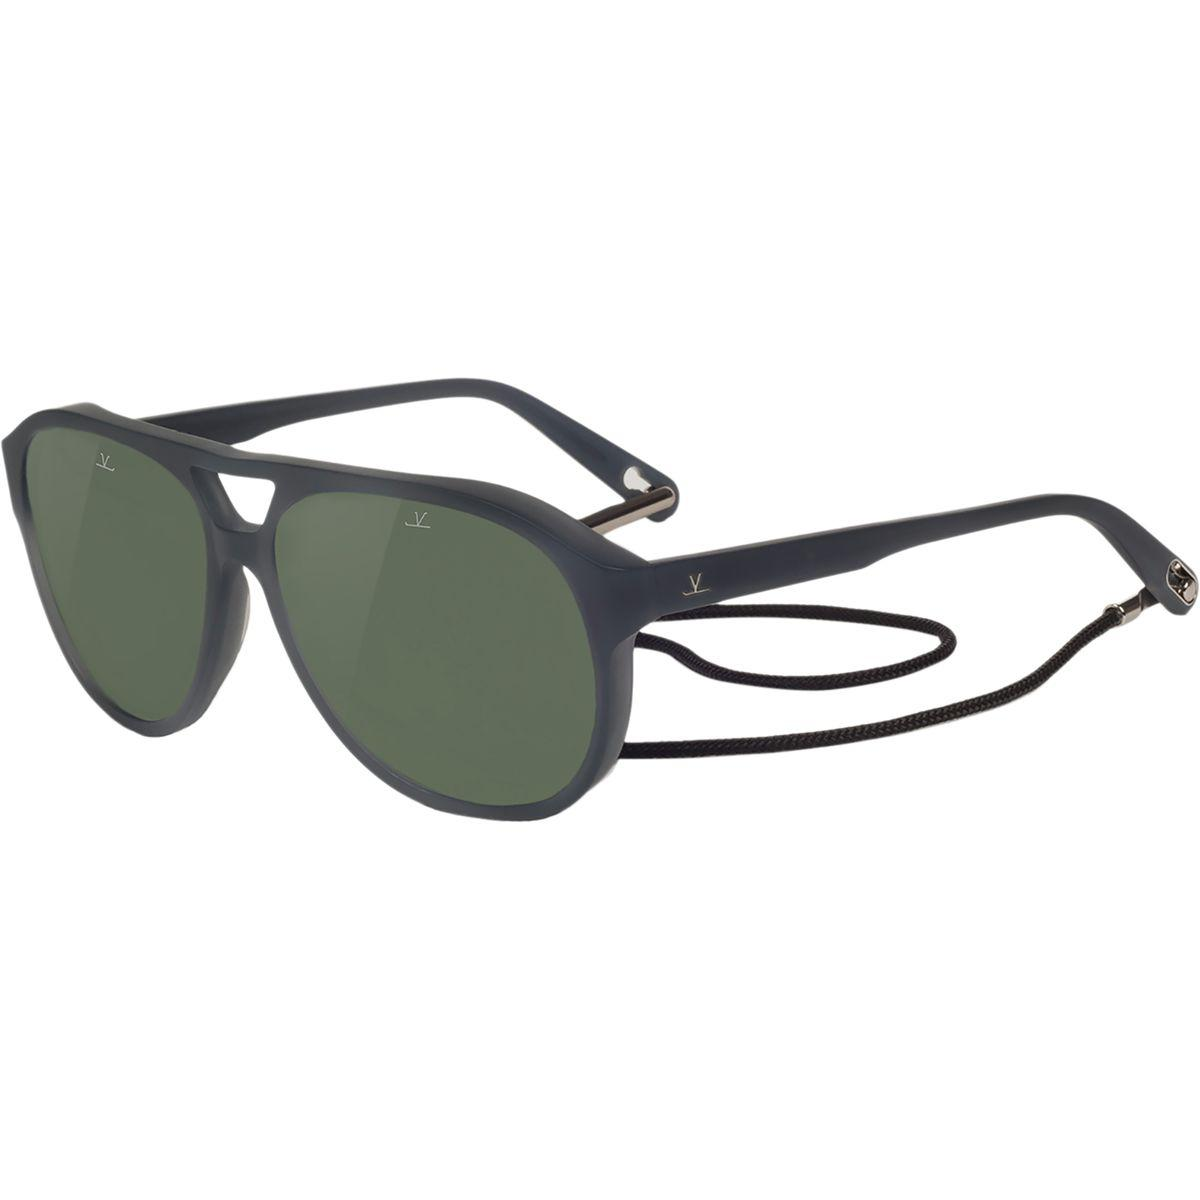 d3d1eeb104f Lyst - Vuarnet Pilot Horizon Vl 1607 Polarized Sunglasses in Gray ...